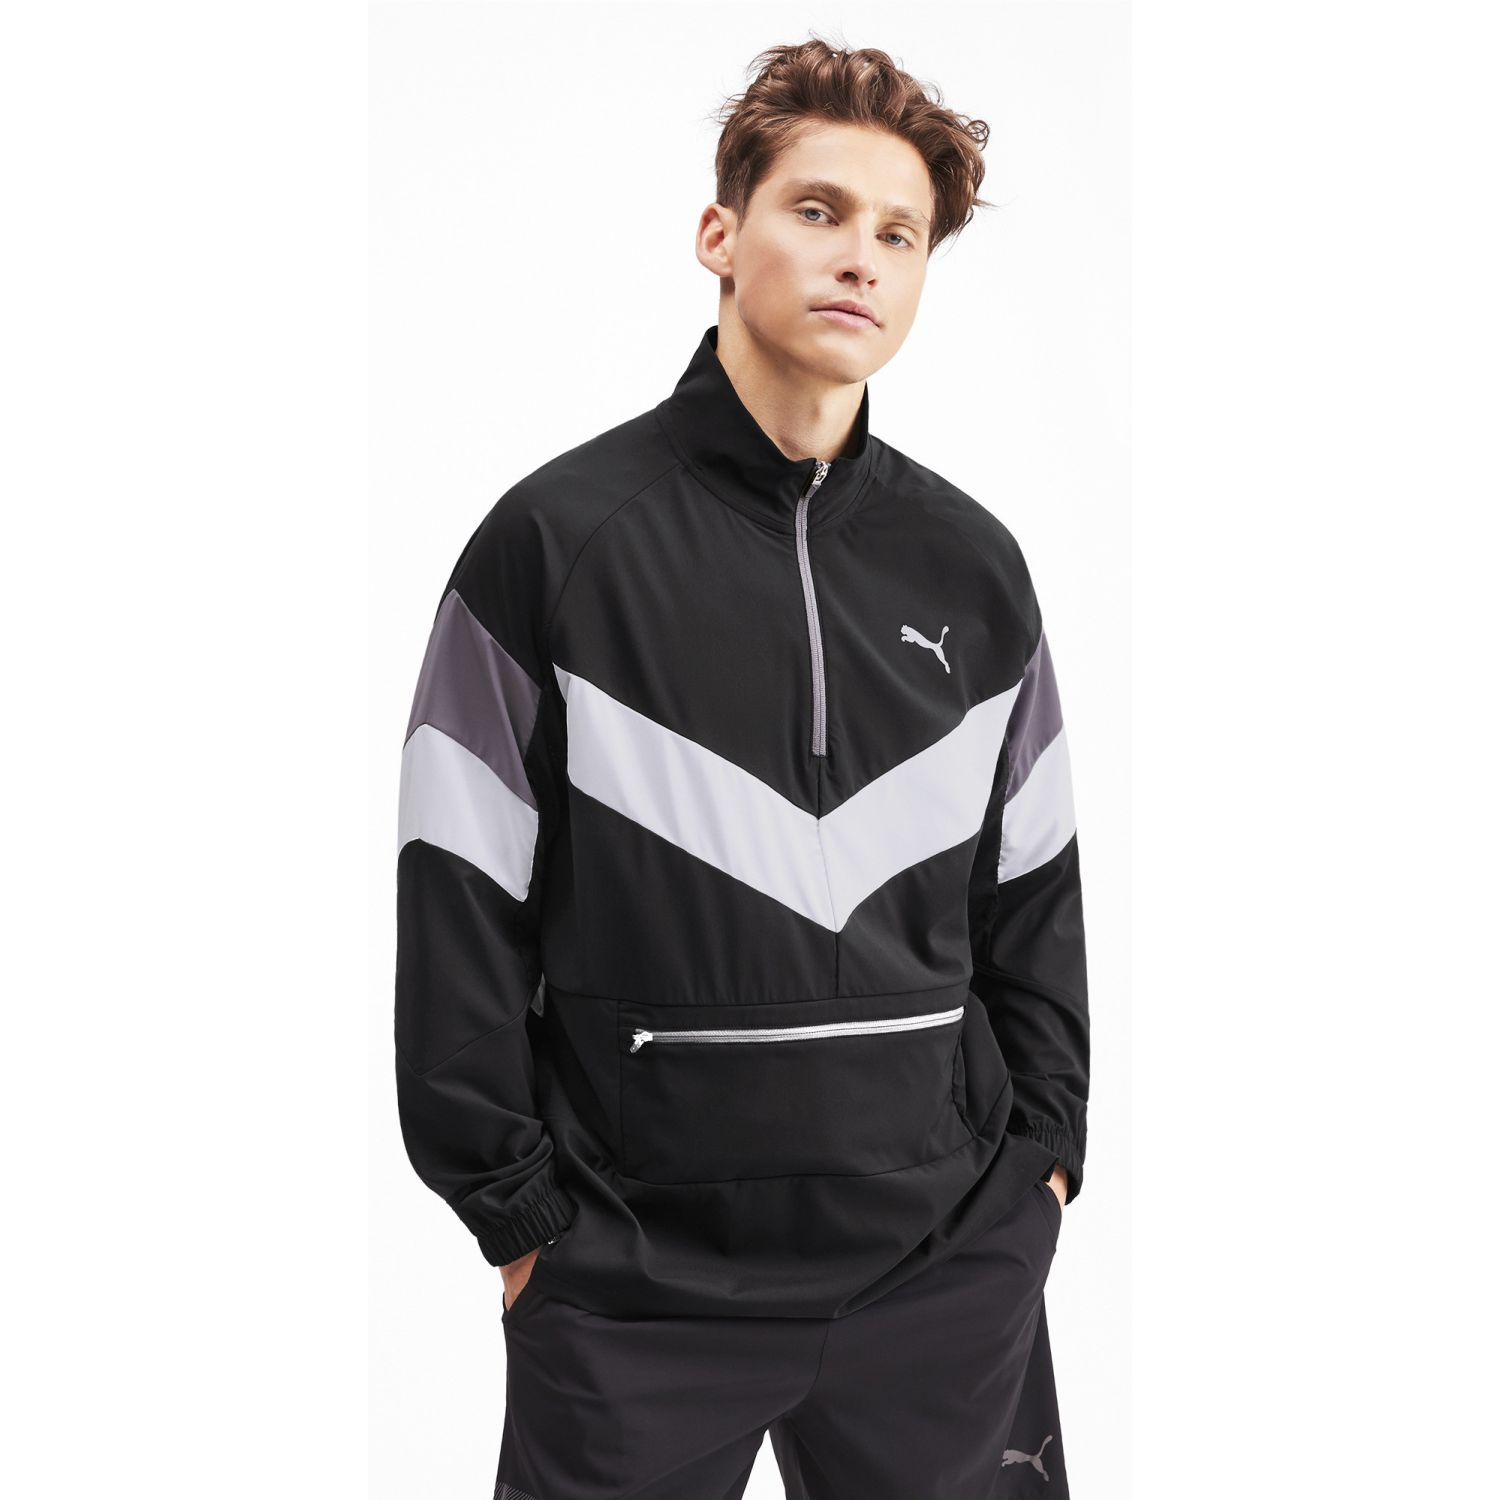 Puma reactive packable jacket Negro / blanco Plumas y alternos